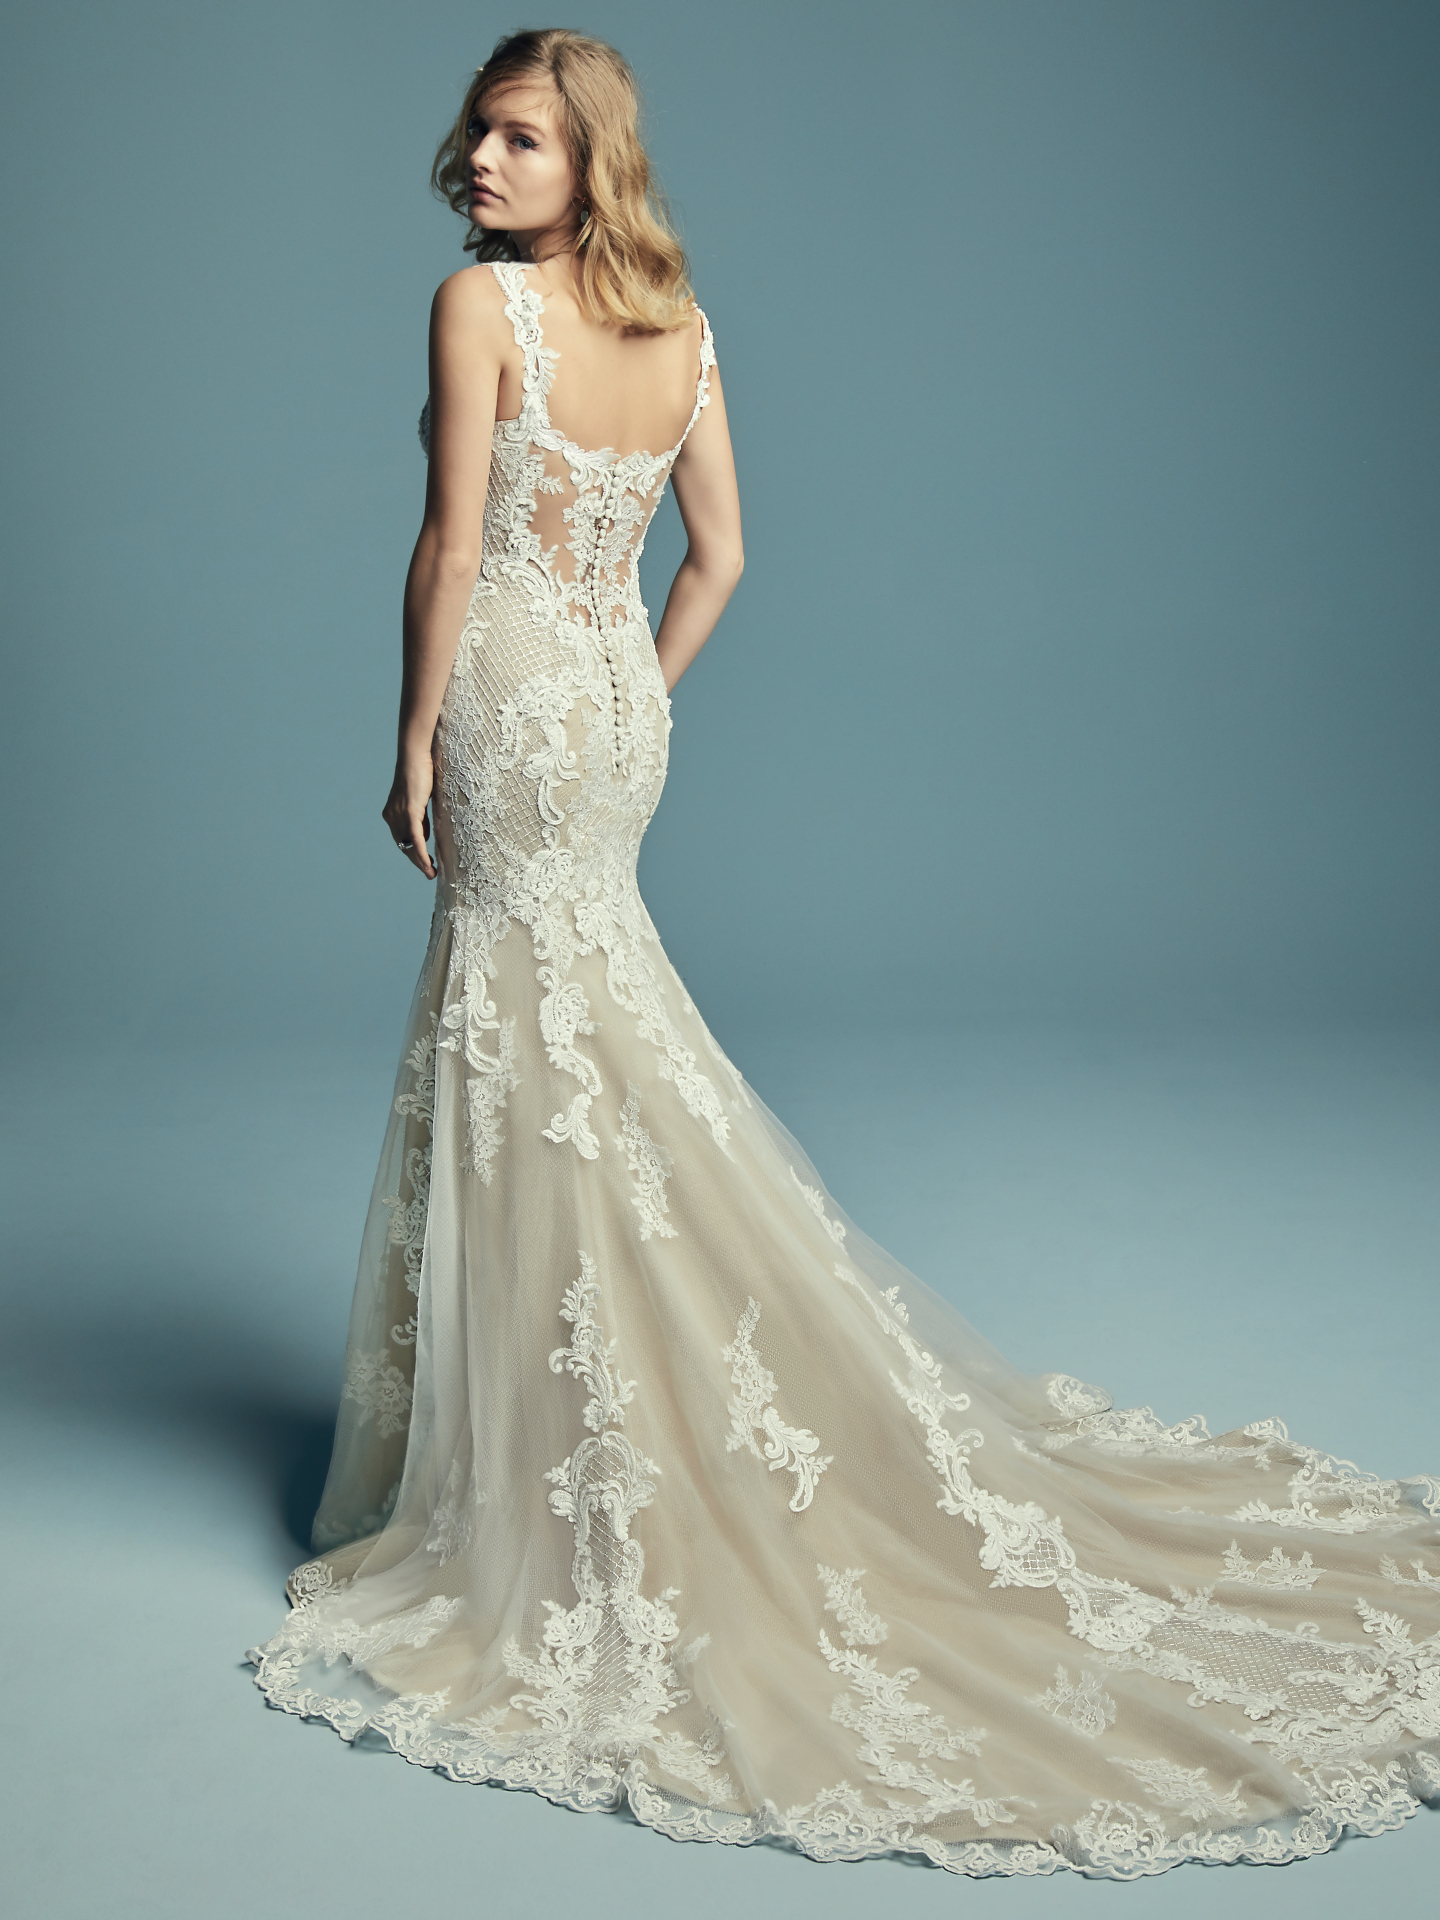 New Boho Wedding Dresses from the Lucienne Collection - Abbie by Maggie Sottero